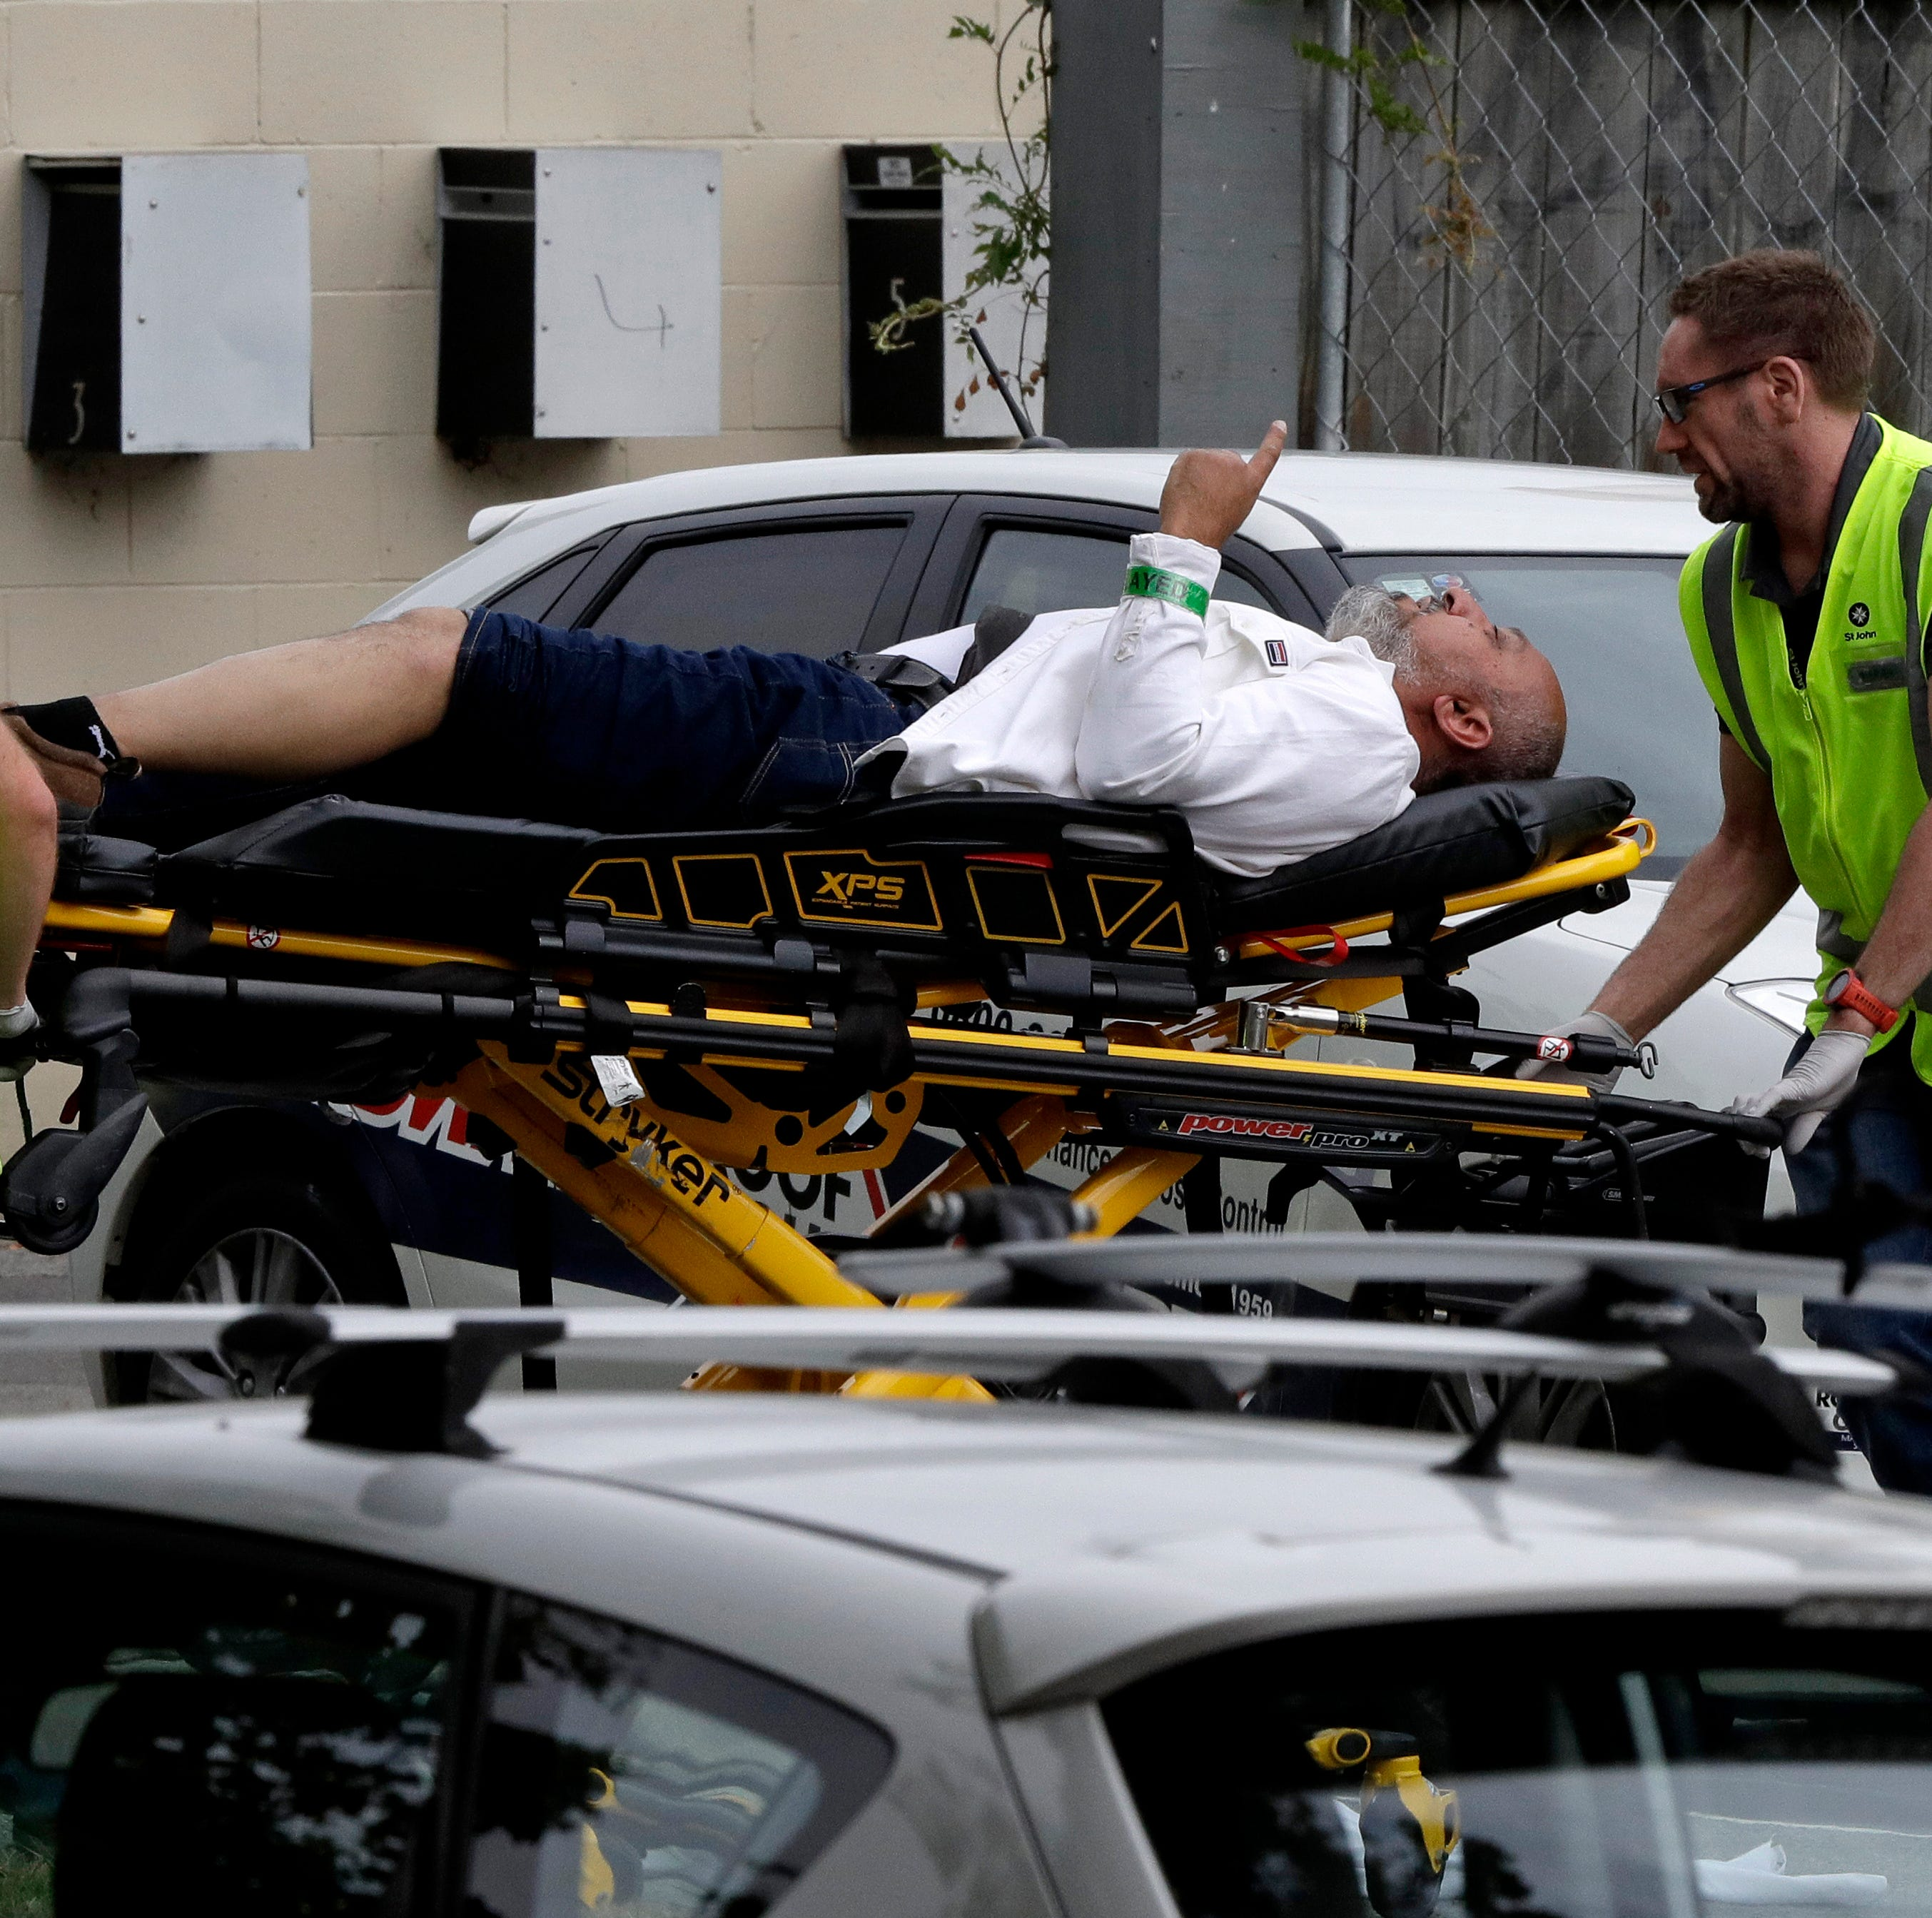 New Zealand shooting: SC's Dylann Roof inspired New Zealand shooter, manifesto says